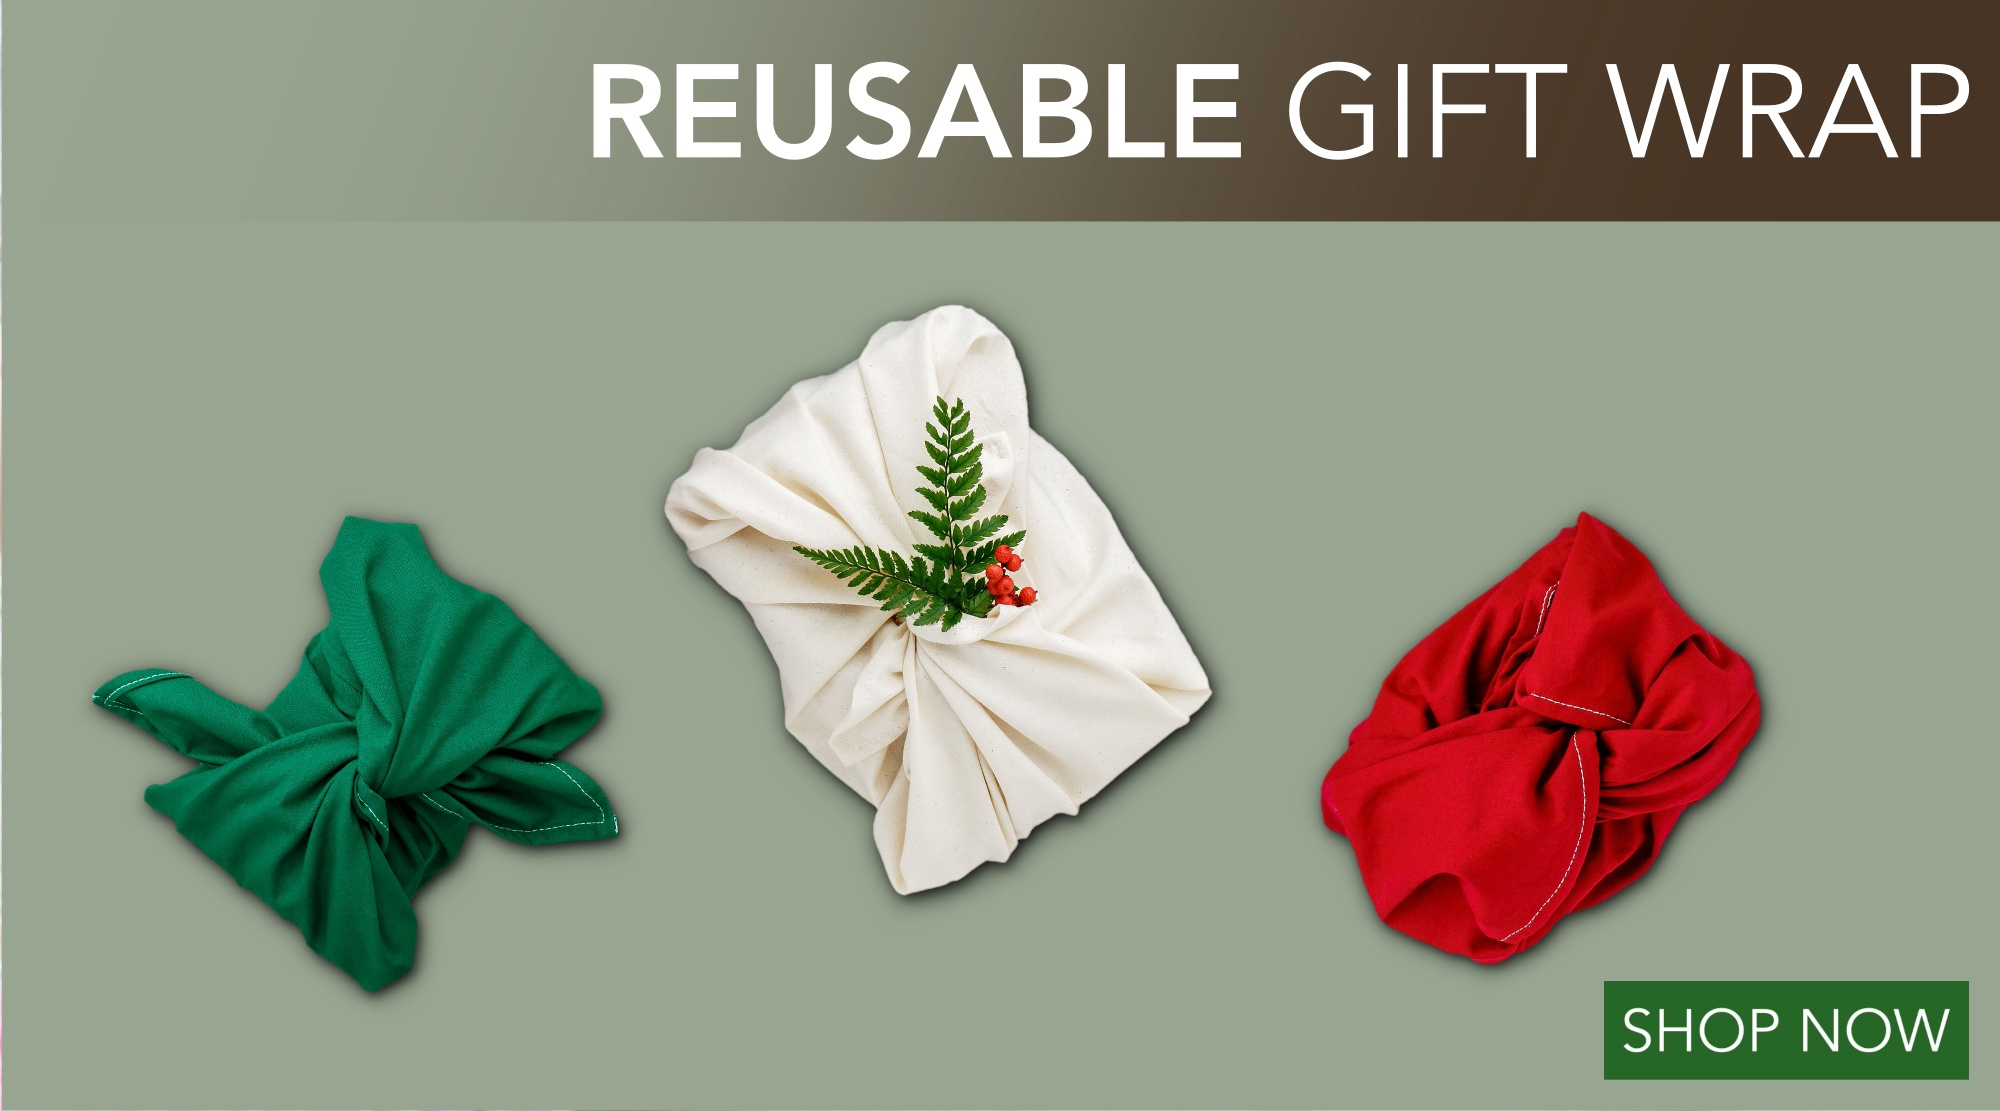 Zero Waste Gift Wrapping - Shop Now